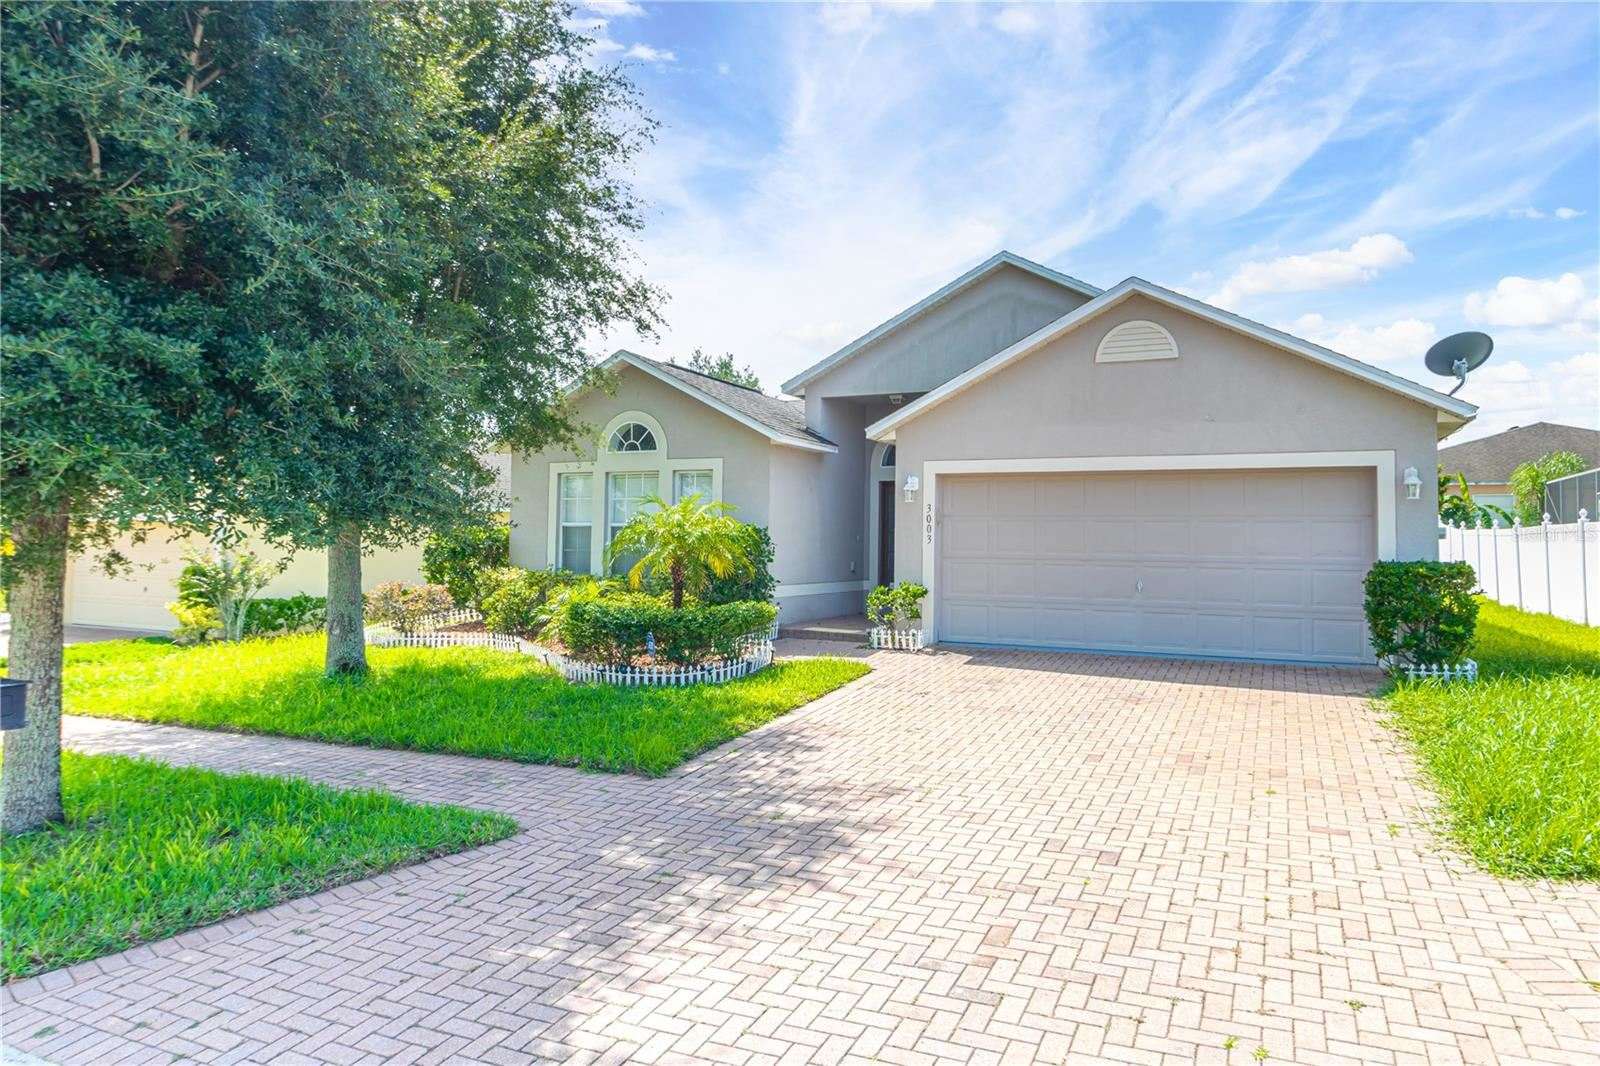 3003 PATTERSON GROVES DRIVE, Haines City, FL 33844 - #: S5055918